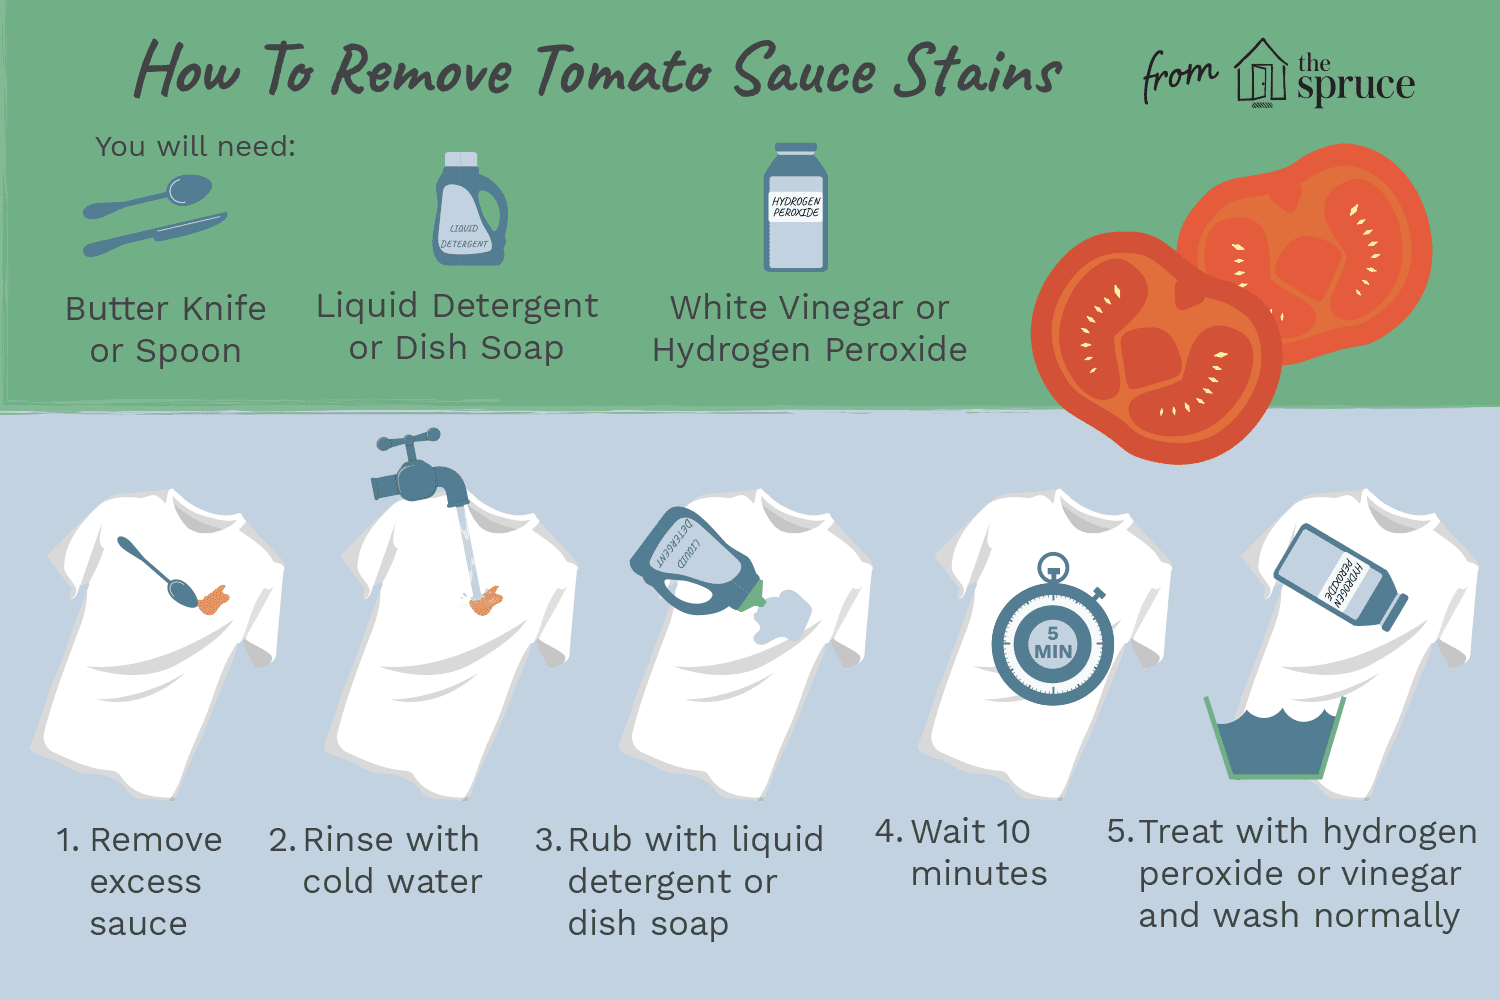 how do you get tomato sauce stains out of plastic